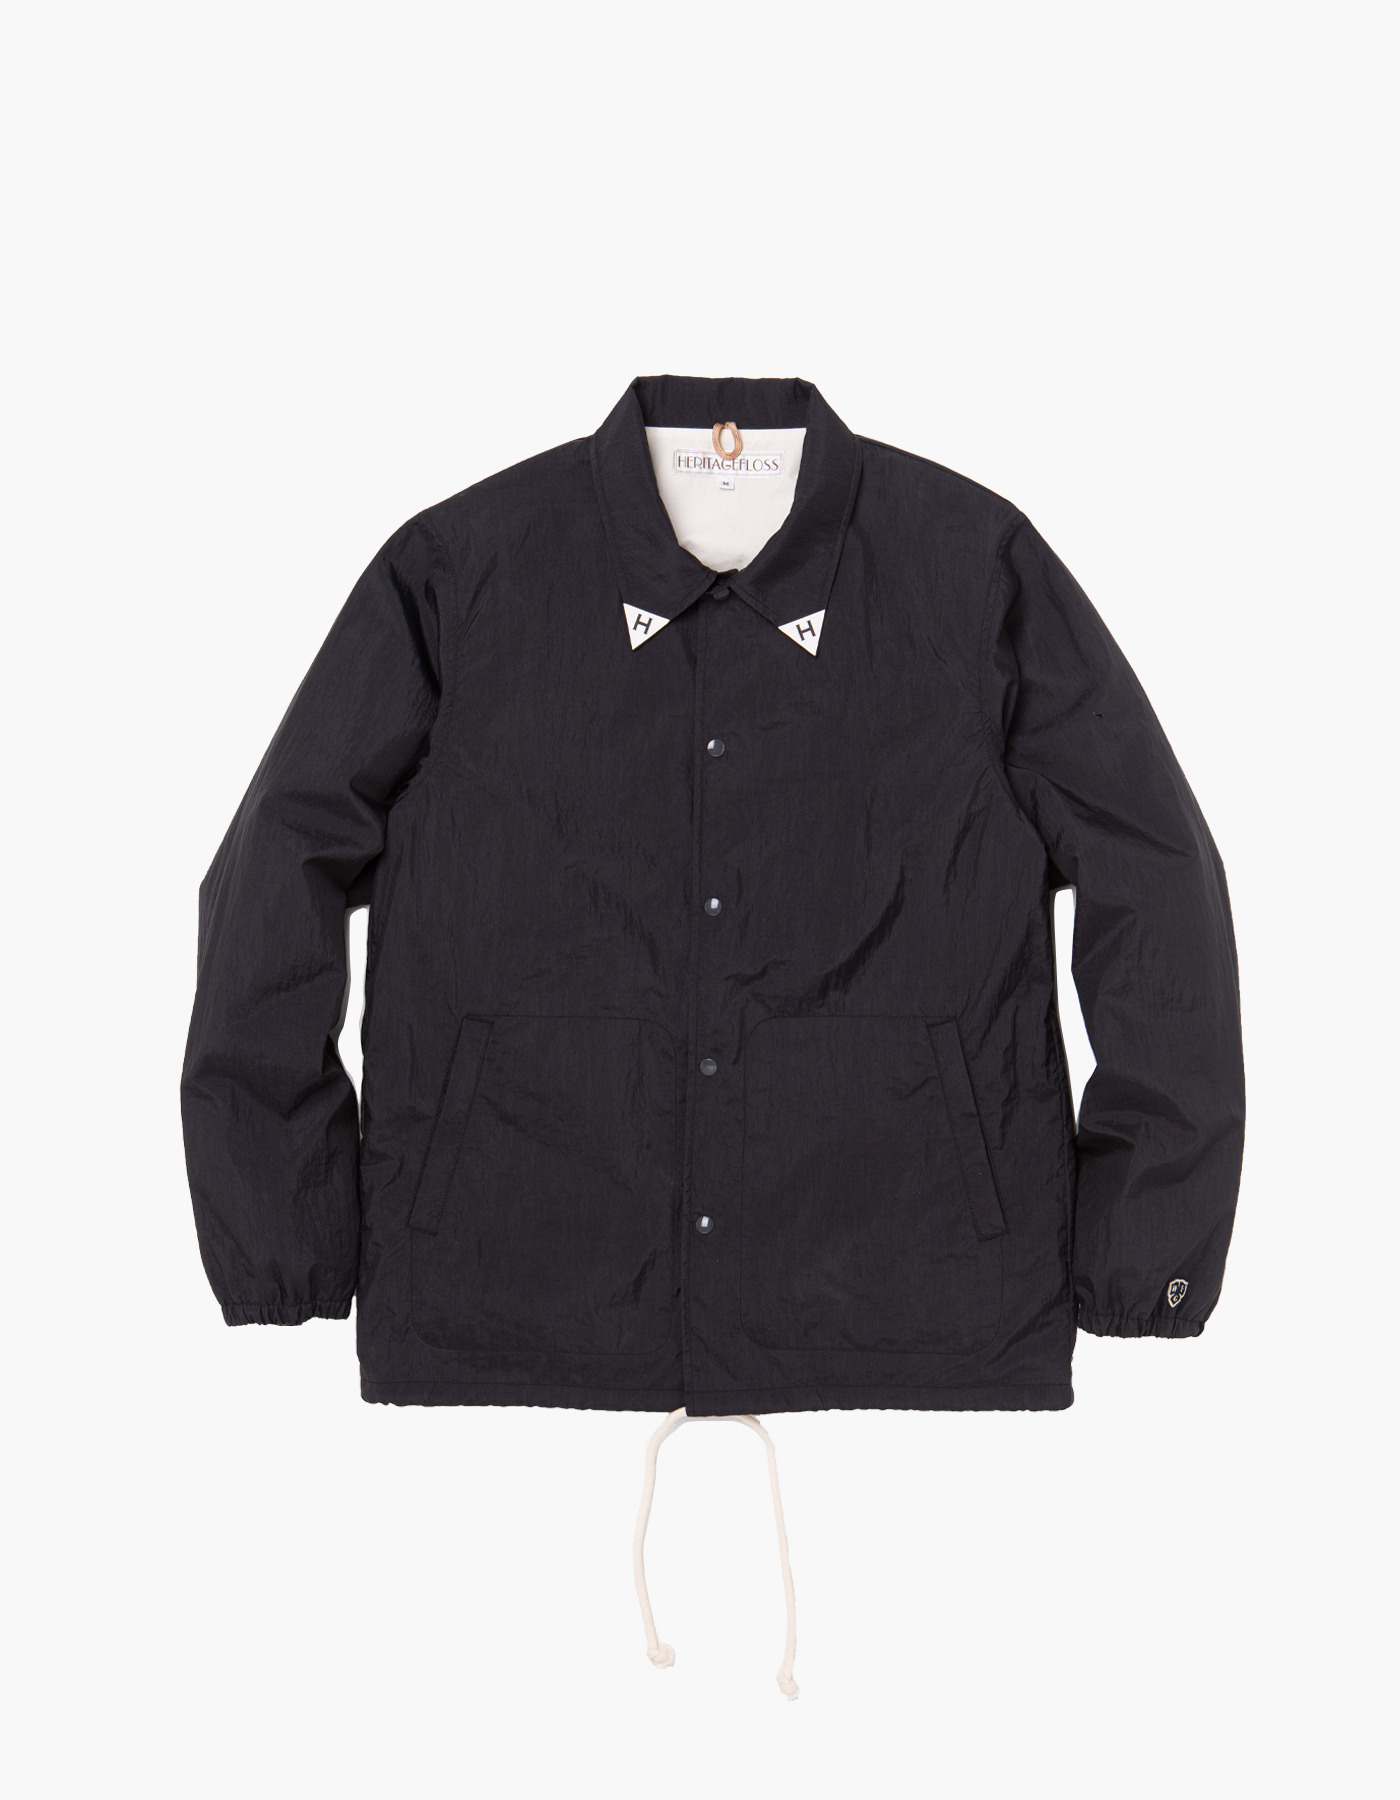 YACHT CLUB COACH JACKET / BLACK